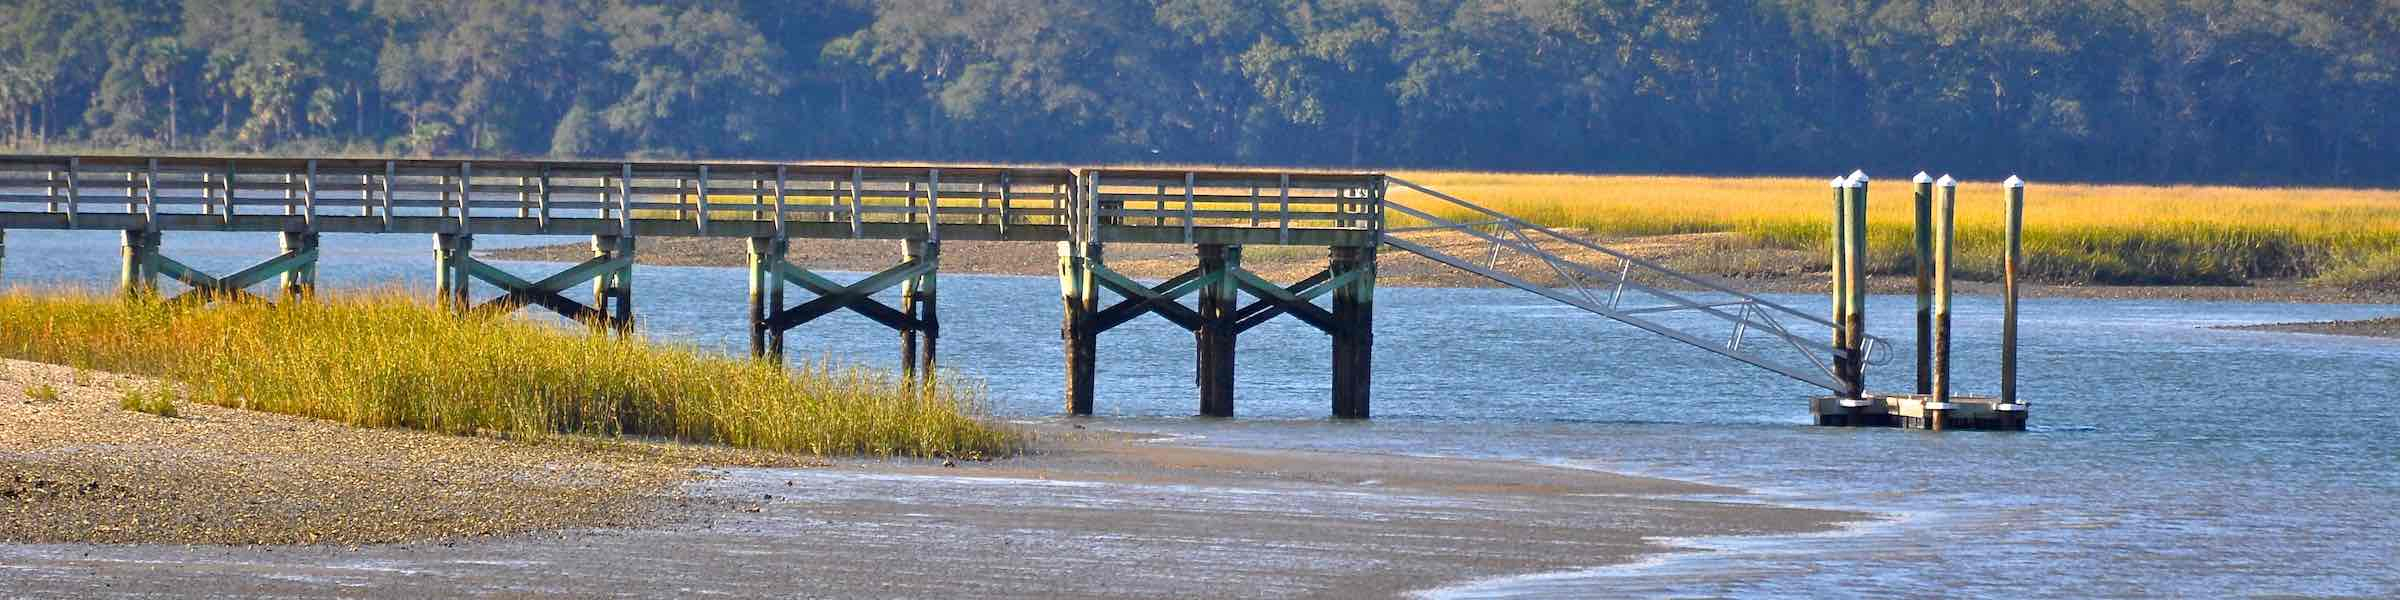 Things To Do In Hilton Head Sc In March 2021 Throughout Hilton Head Calendar Of Events 2021